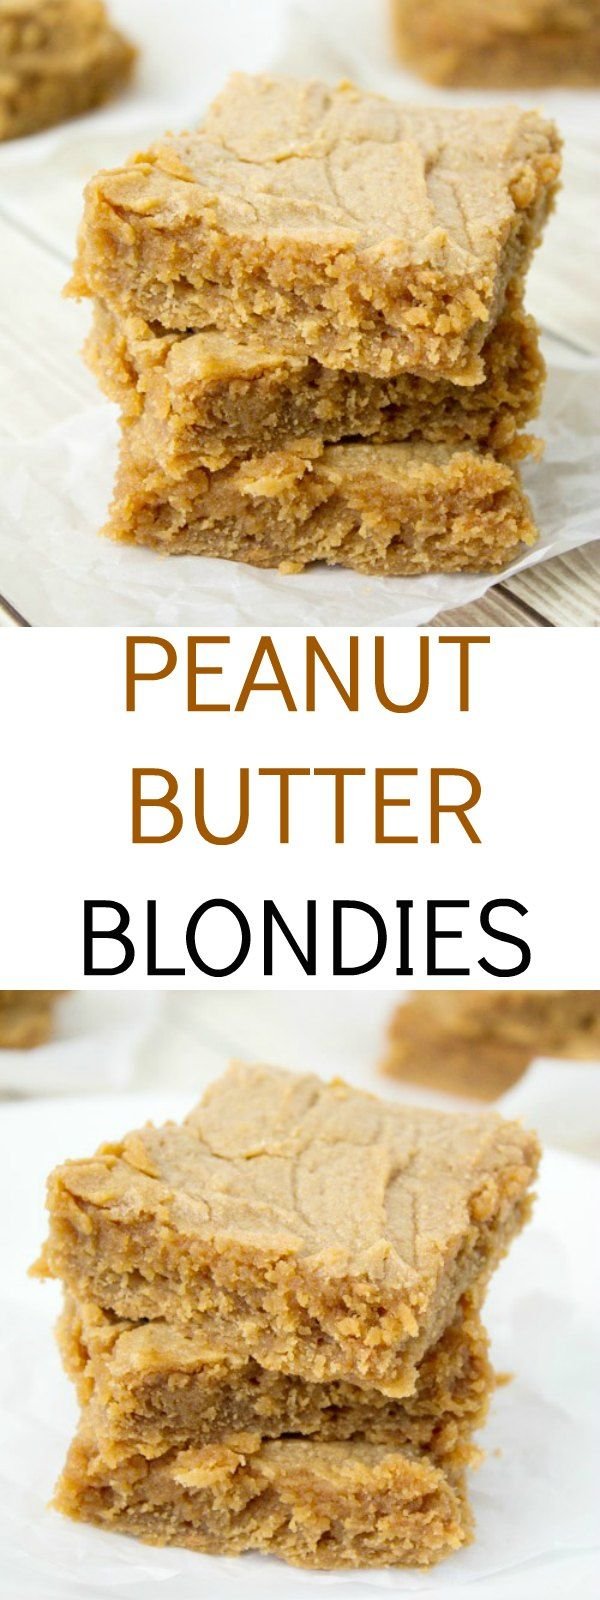 An easy and delicious peanut butter blondie recipe – you will not miss the chocolate at all. Great peanut butter taste and an ultra-fudgy center. I added 1/2 cup chocolate chips and 1/2 tsp almond extract.